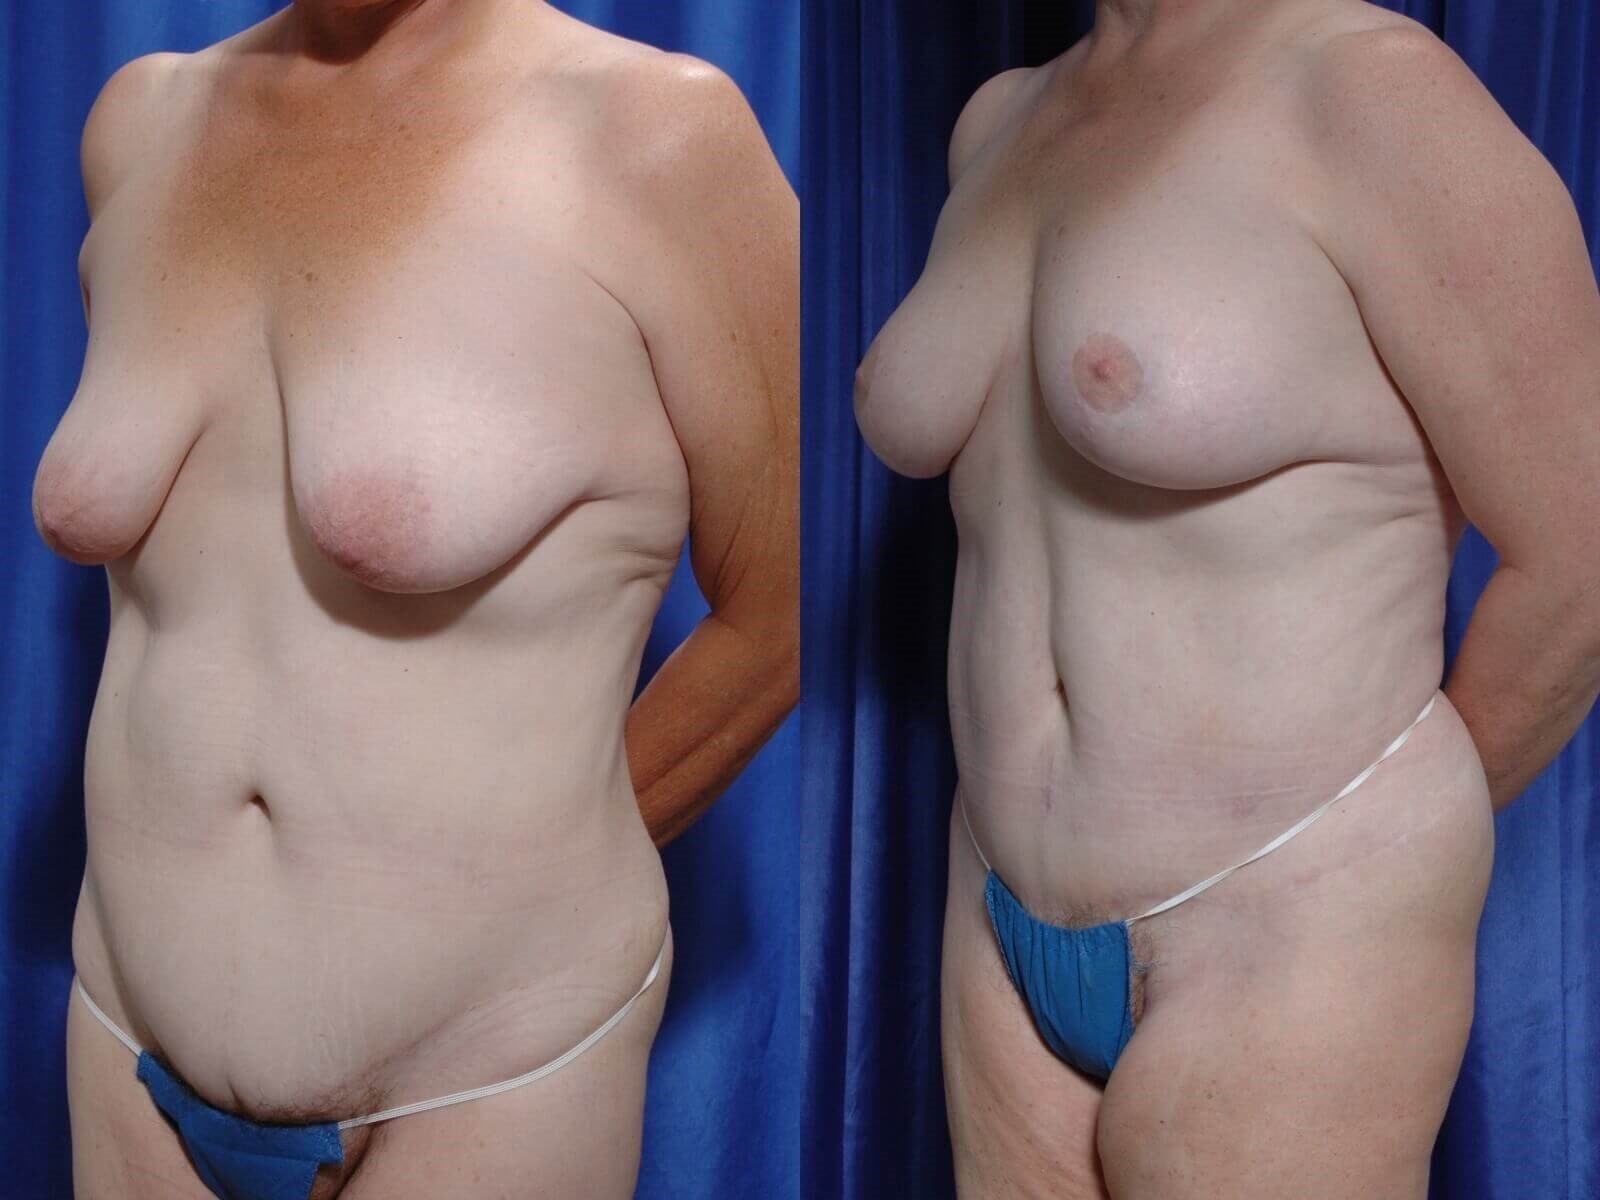 TummyTuck, Fat to Chest, Lift Before/After